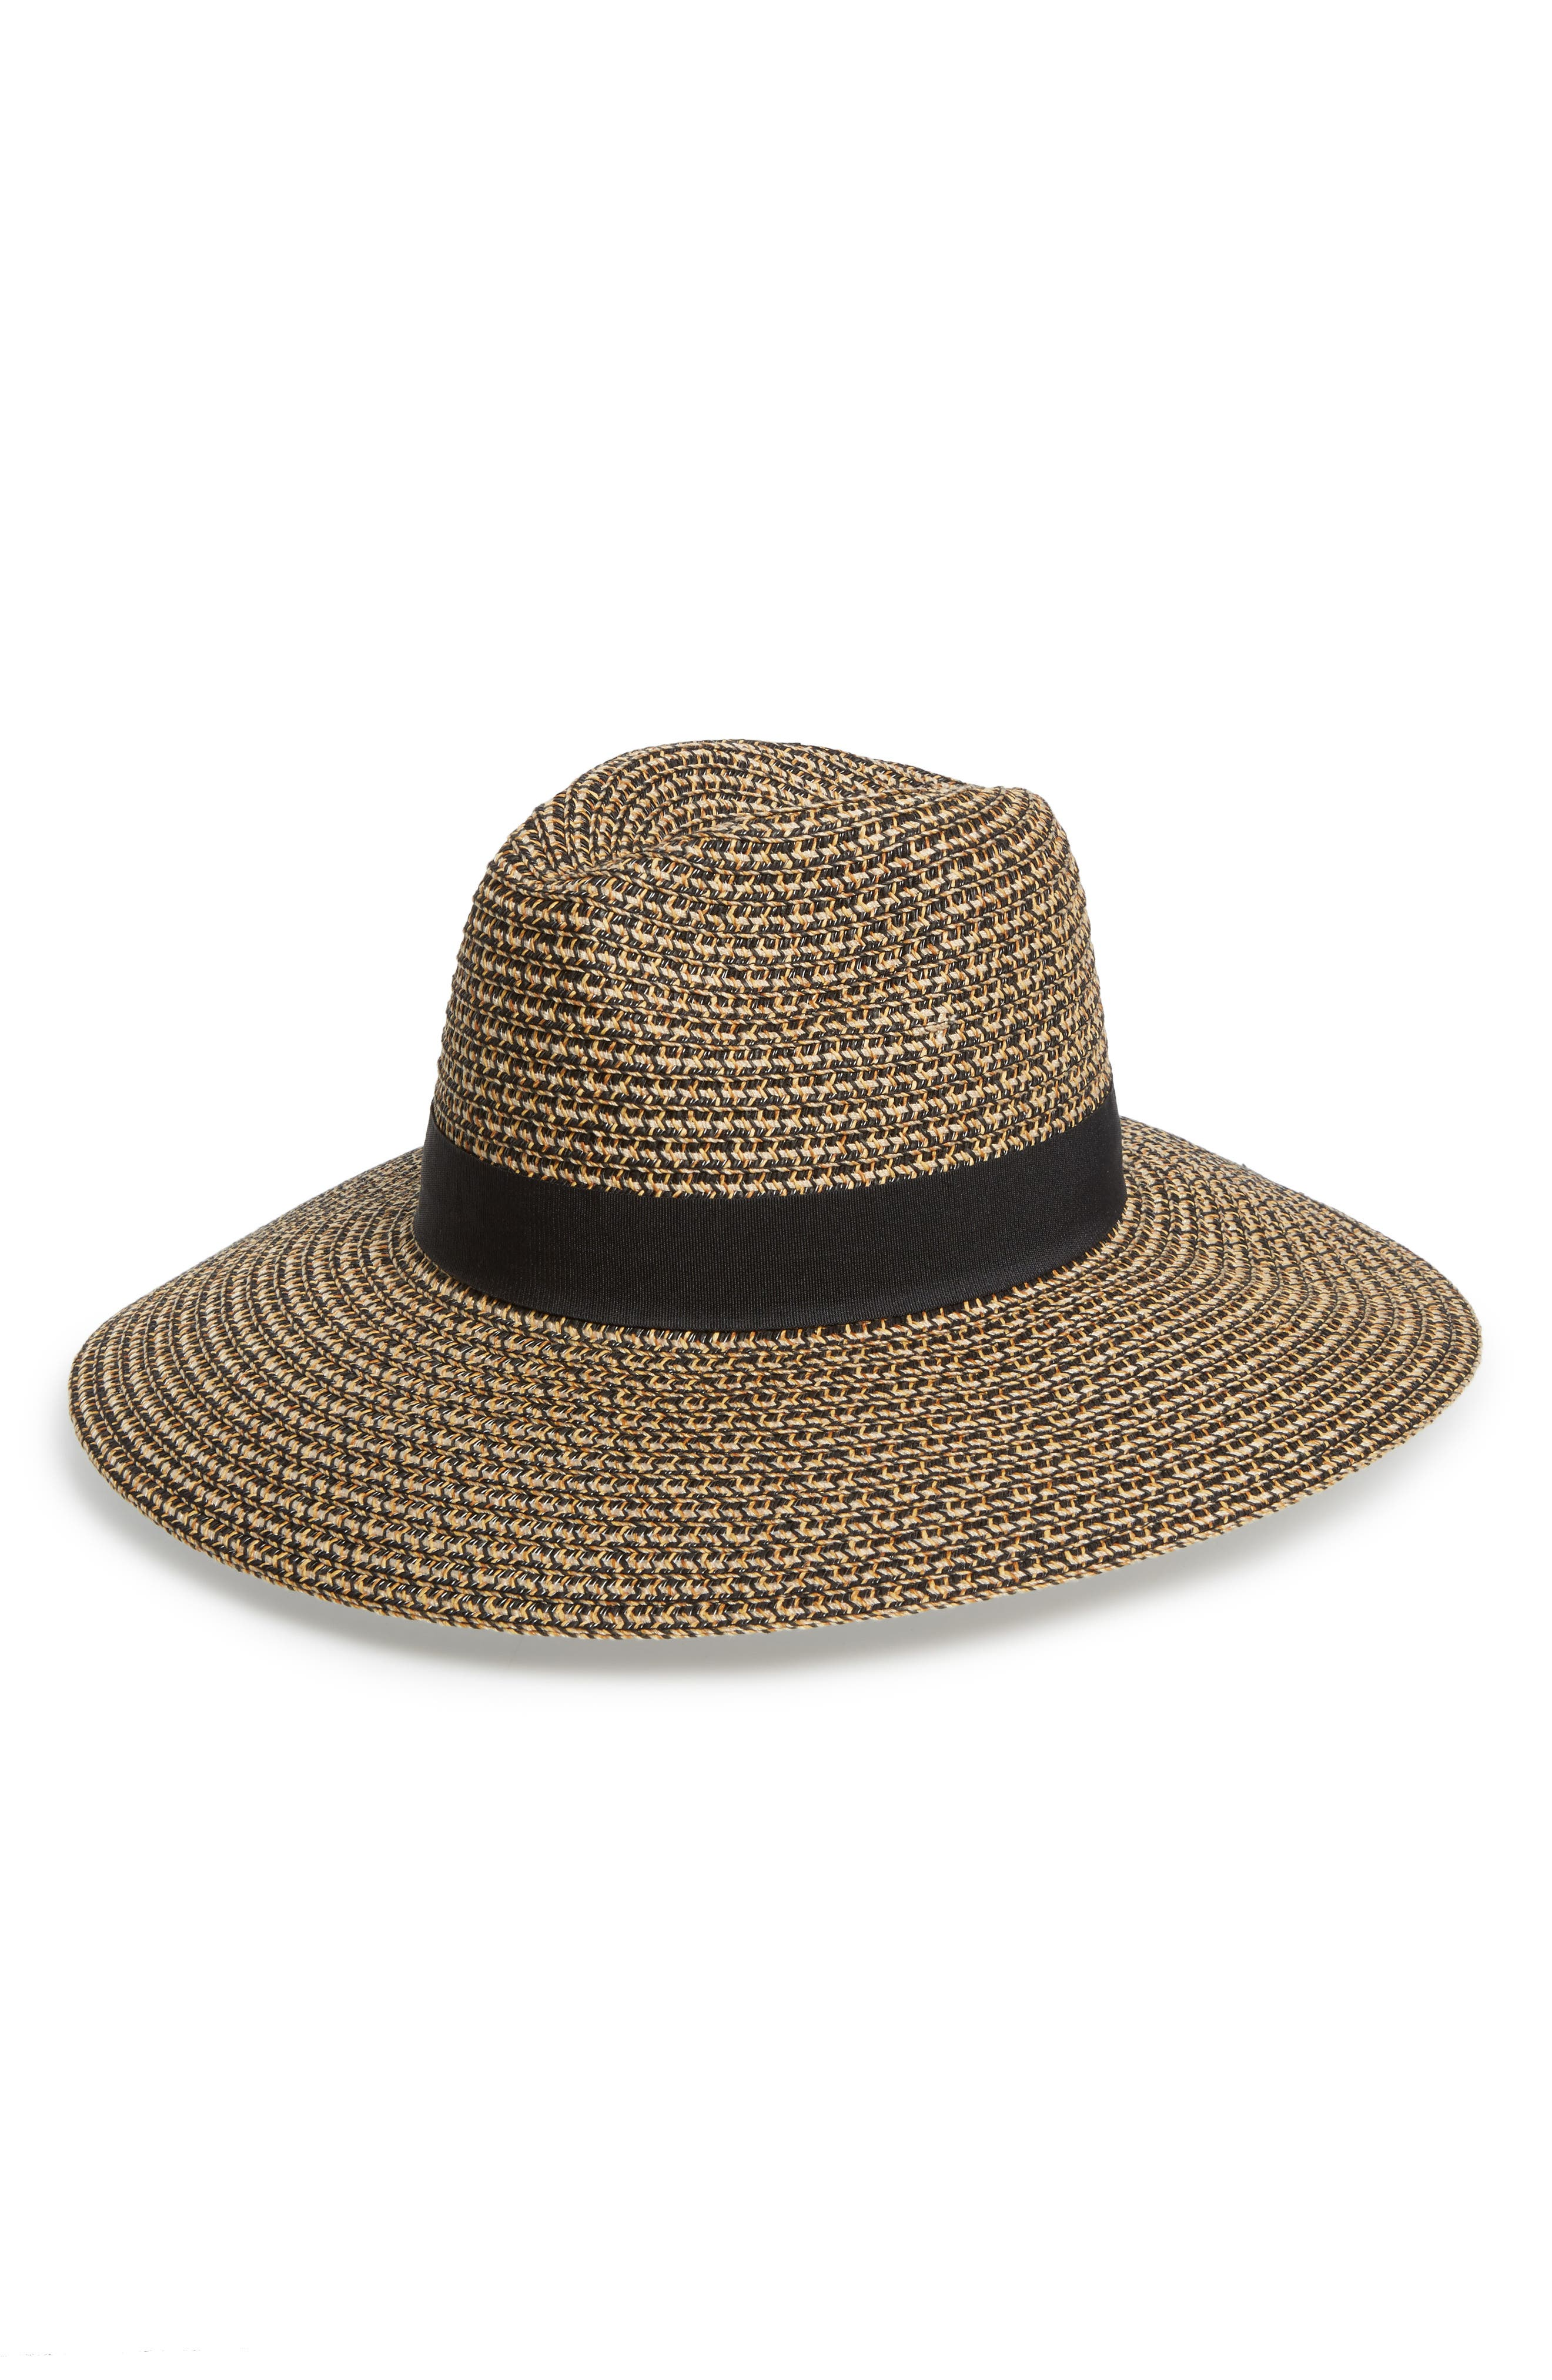 Alternate Image 1 Selected - Sole Society Woven Straw Sun Hat